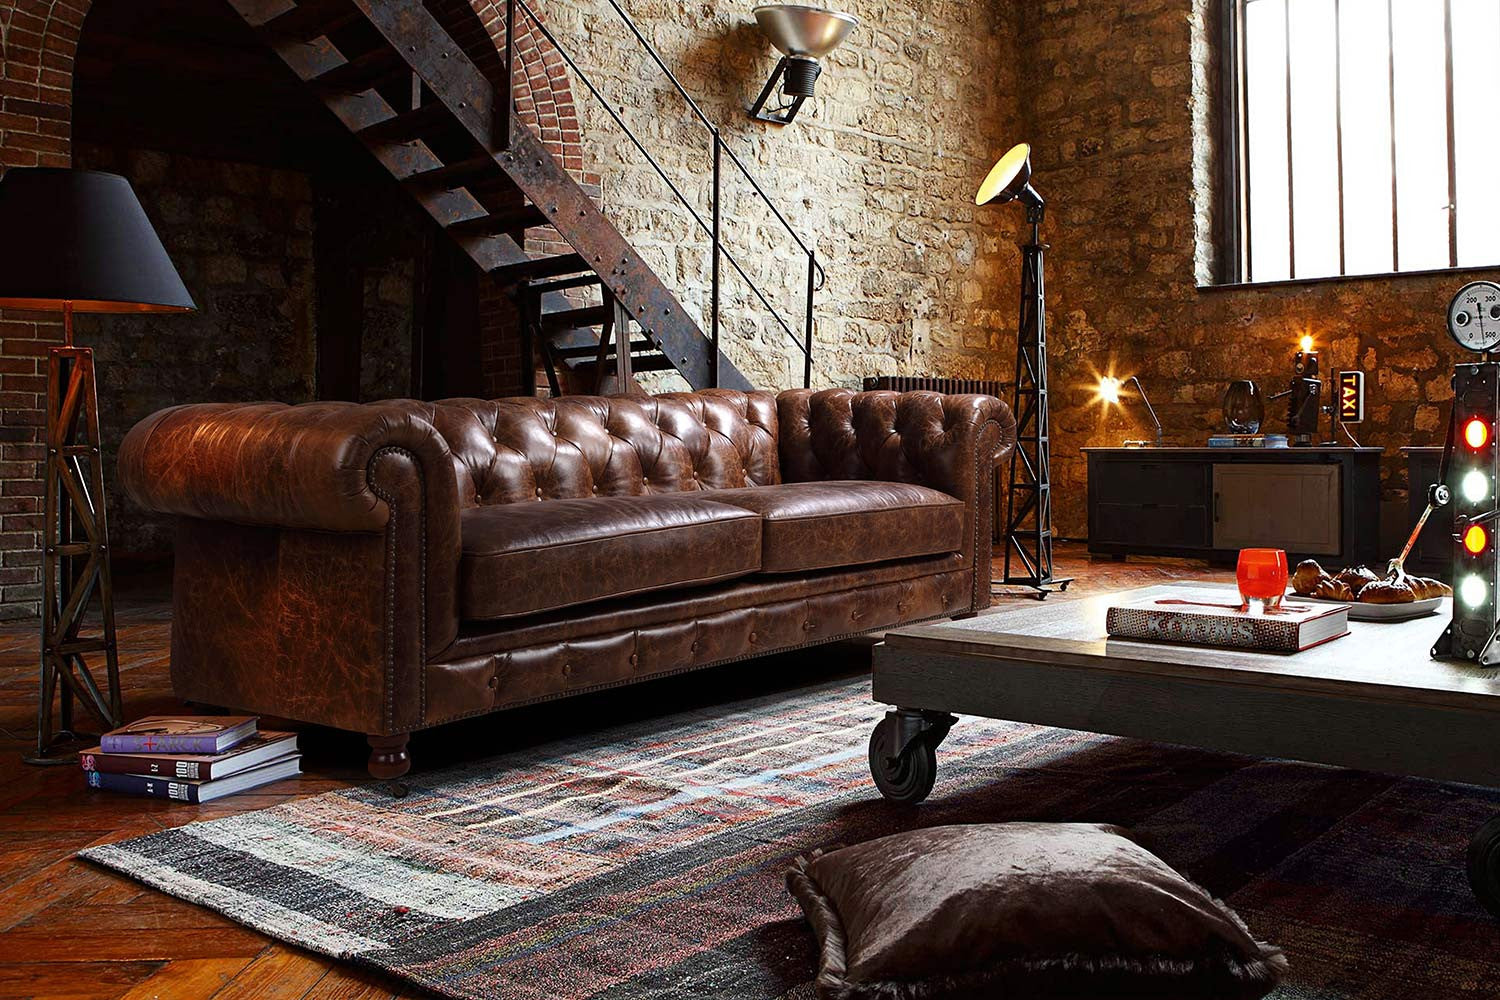 Charmant Kensington Chesterfield Leather Sofa By Rose U0026 Moore In An Industrial  Interior